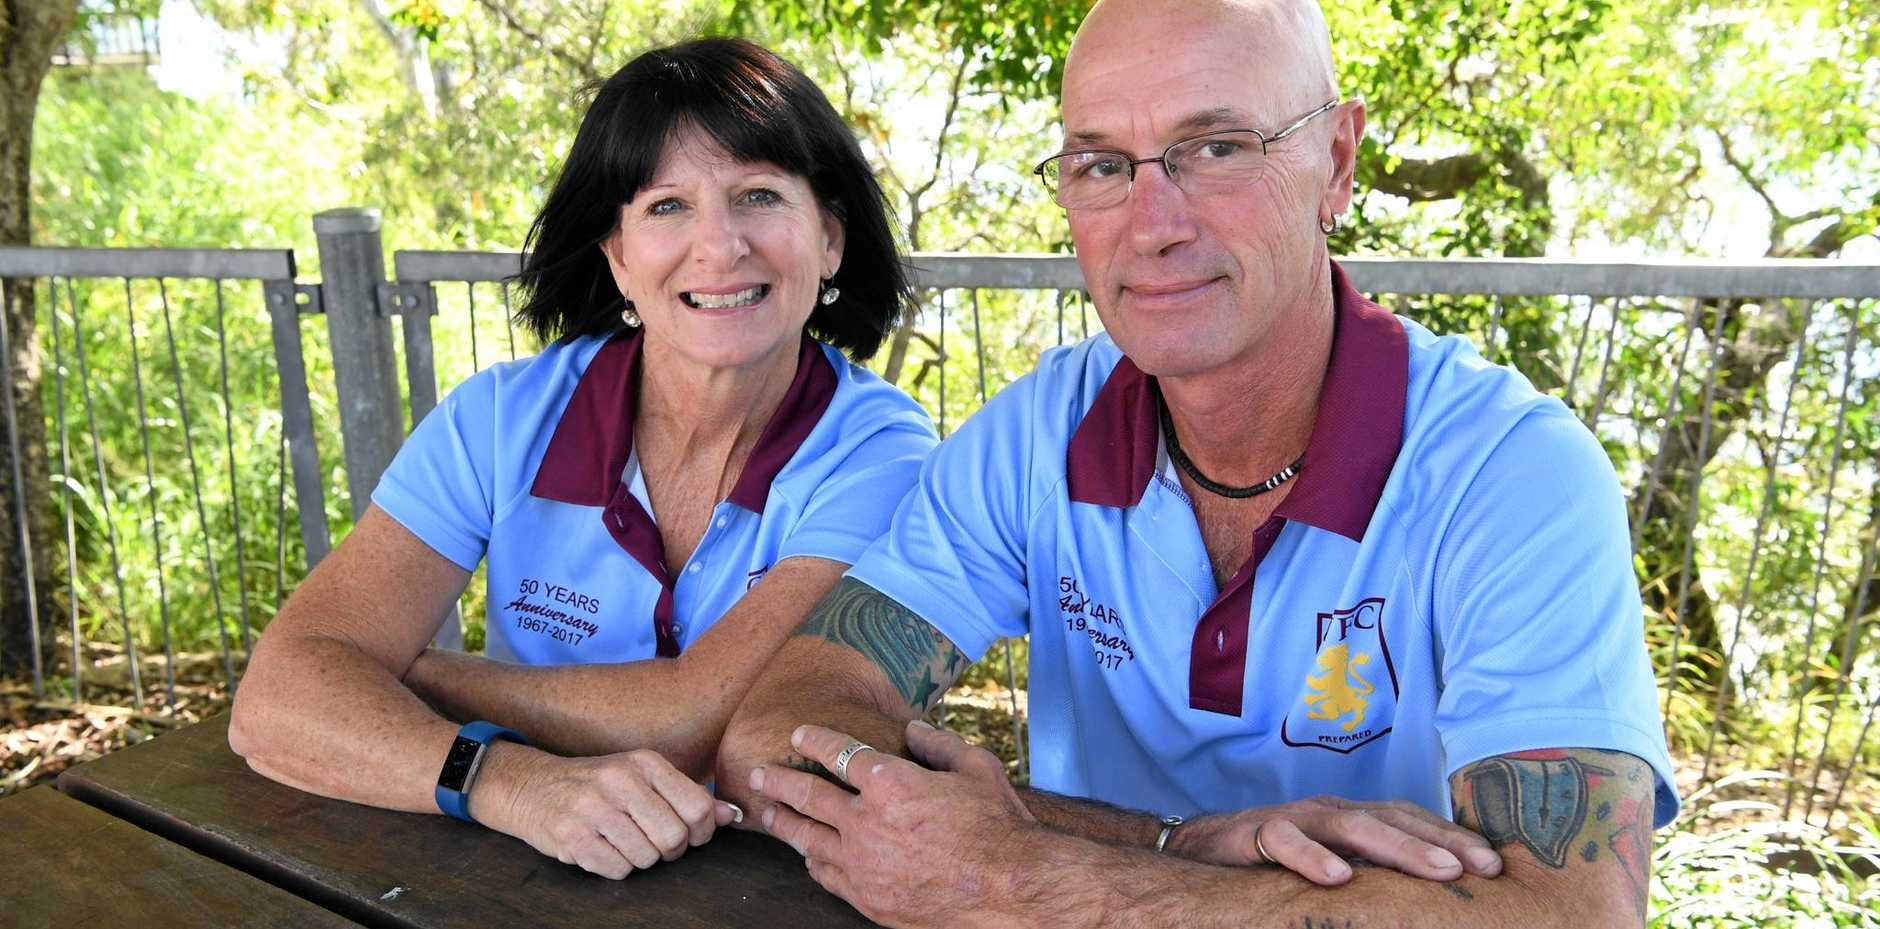 PROUD HISTORY: Kayleen Bryan and Dave Smith believe the club's focus on juniors is the key to success.